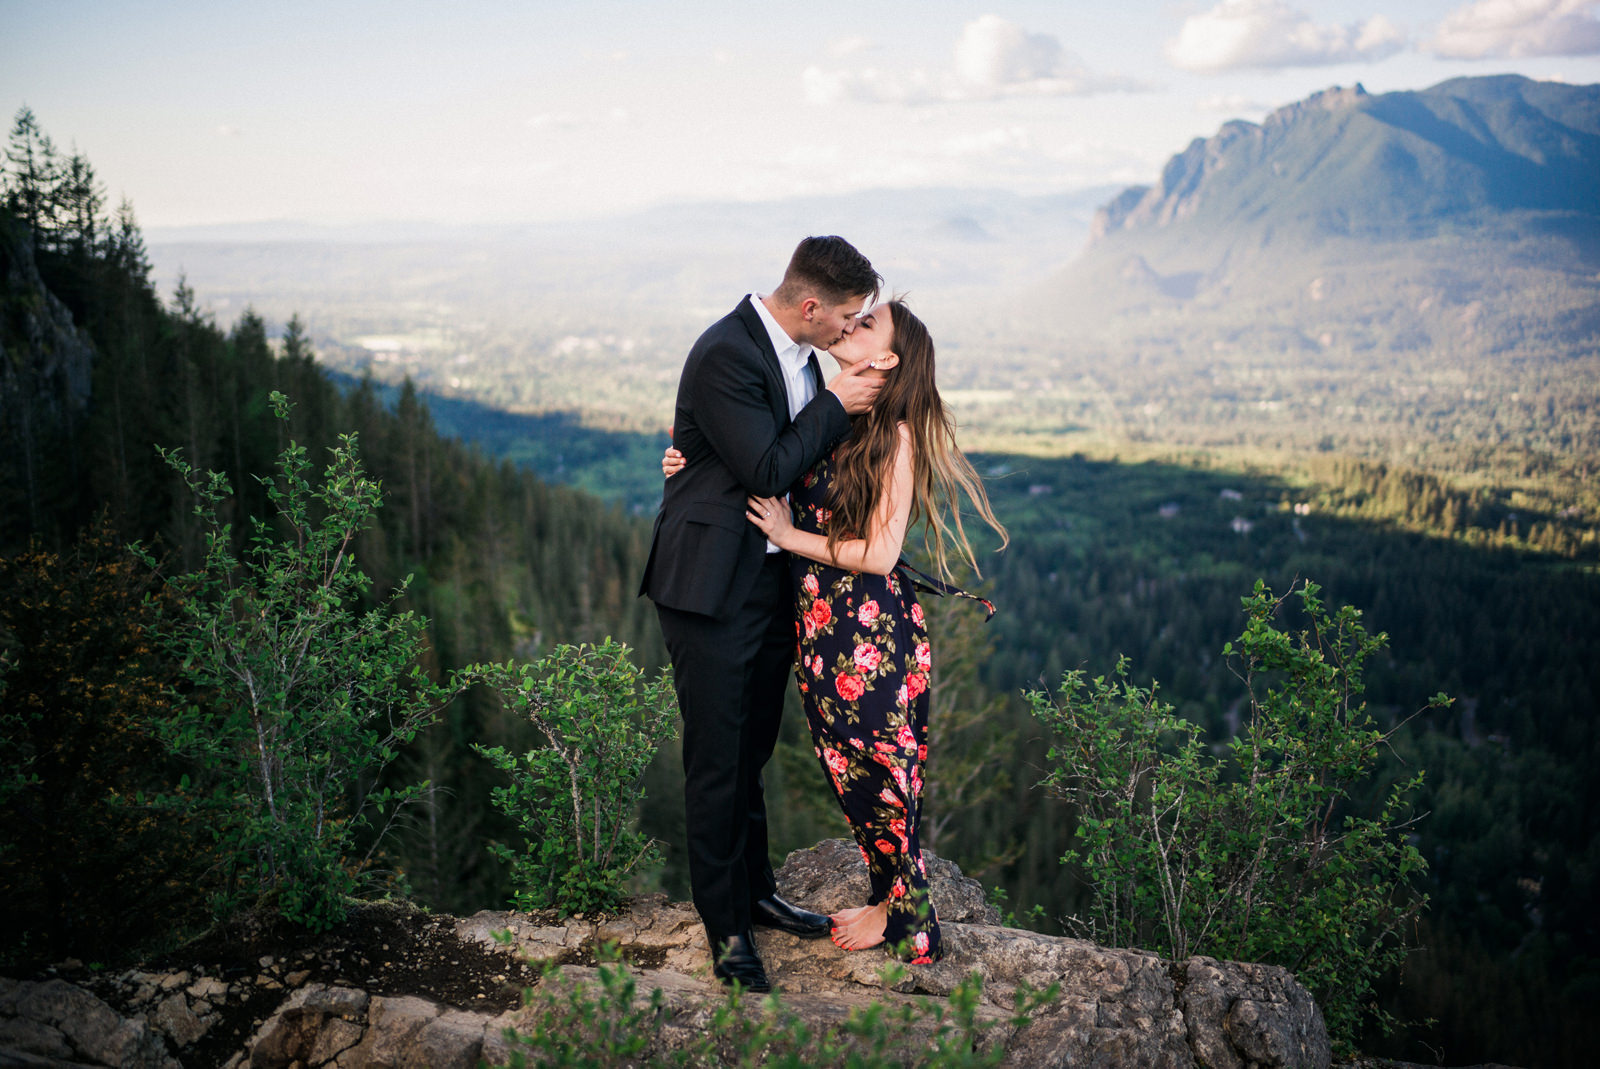 211-adventurous-rattlesnake-ledge-engagement-photo-by-seattle-wedding-photographer-ryan-flynn.jpg